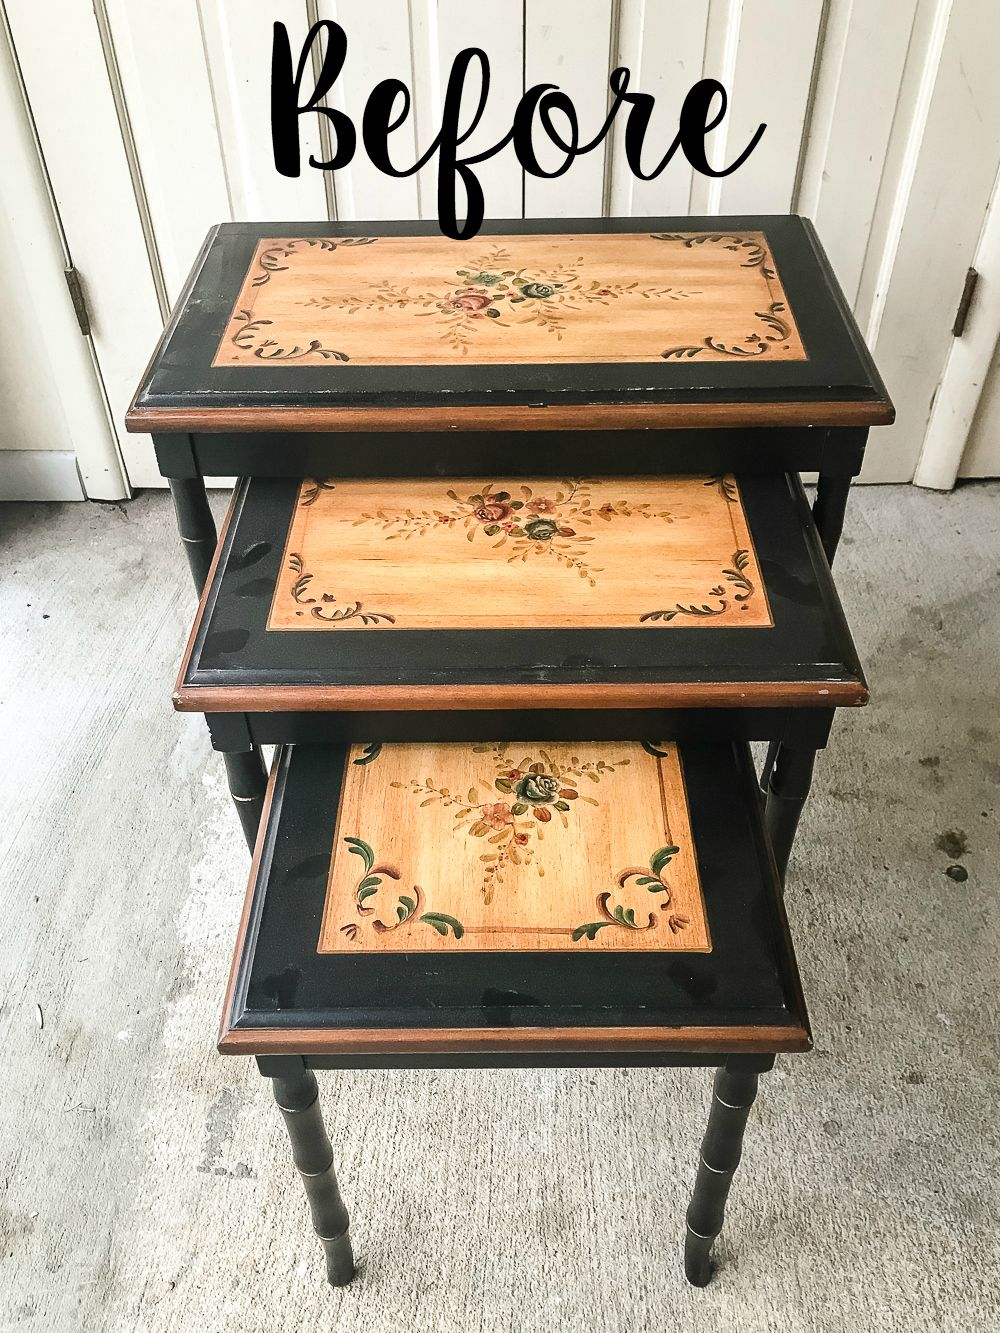 Faux Bone Inlay Nesting Tables Makeover | blesserhouse.com - How to stencil furniture to look like an Indian bone inlay Anthropologie piece plus more thrift store furniture makeover ideas. #furnituremakeover #knockoff #thrift #stencil